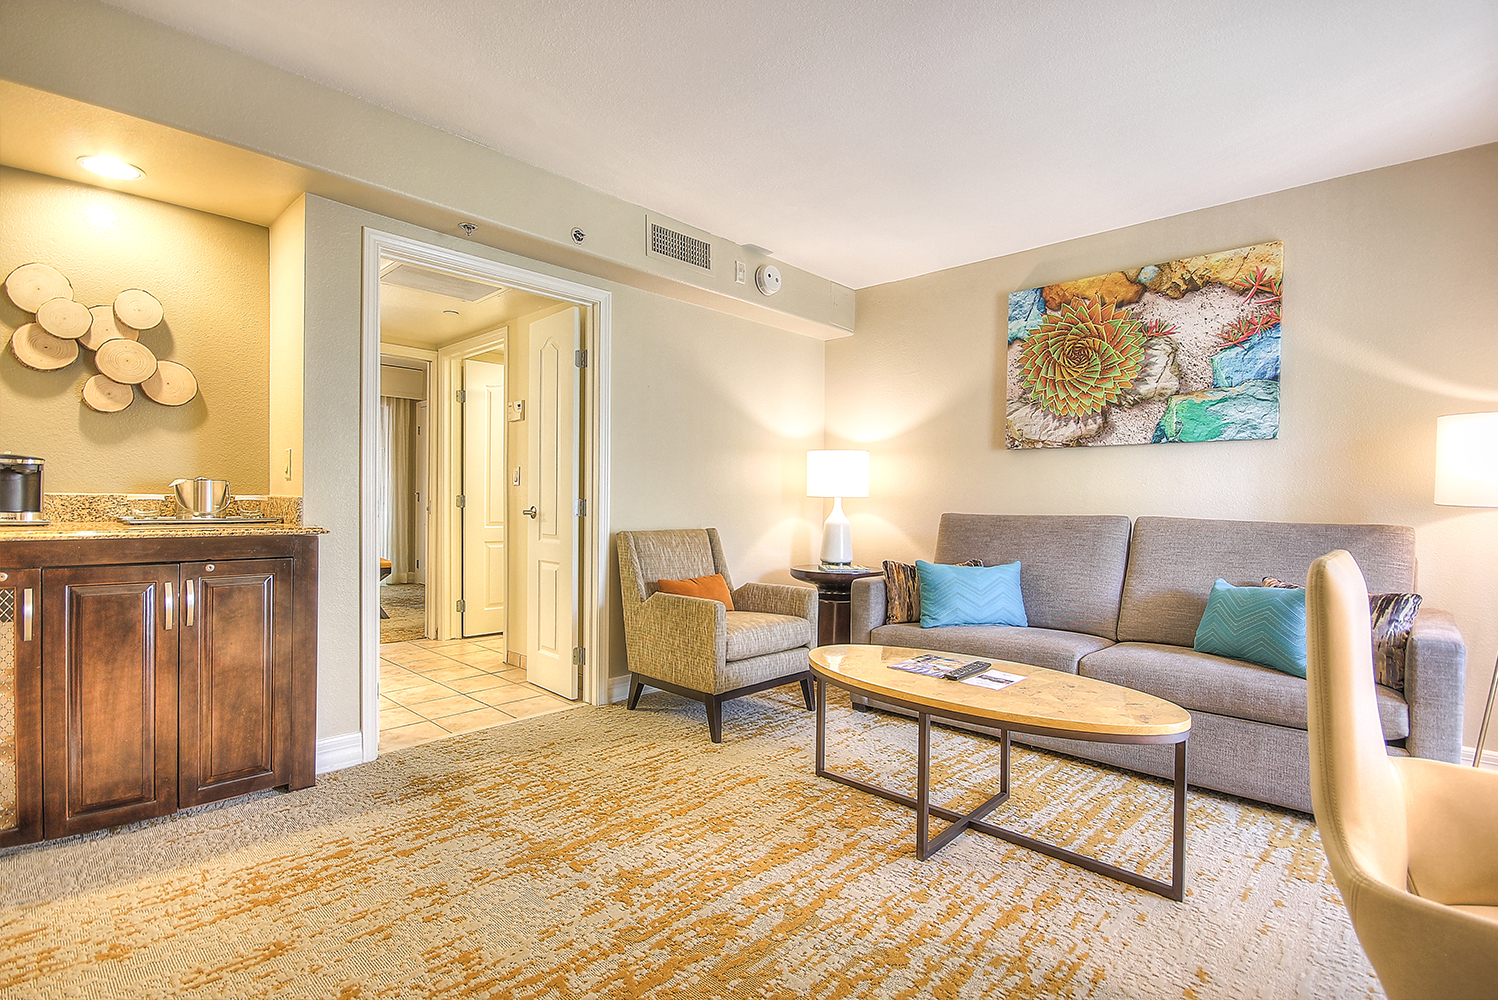 Each two-room suite has a queen-sized sofa sleeper in the living room, wet bar, two high definitions televisions and social seating areas.